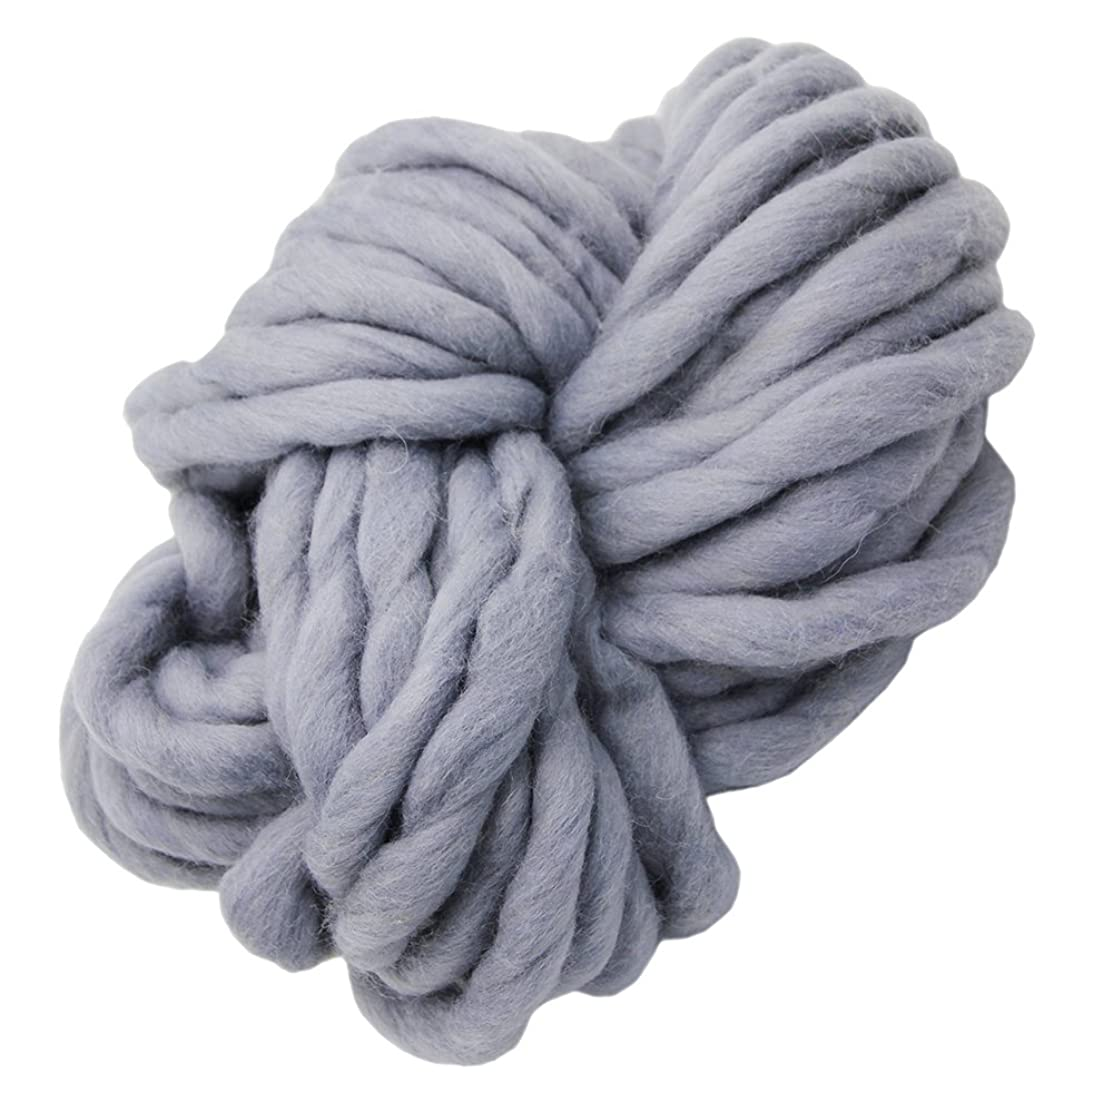 Merino Wool Super Chunky Yarn- Wool Roving Yarn for Finger Knitting,Crocheting Felting,Making Rugs Blanket and Crafts by FLORAKNIT (Gray, 20mm-0.55LB)